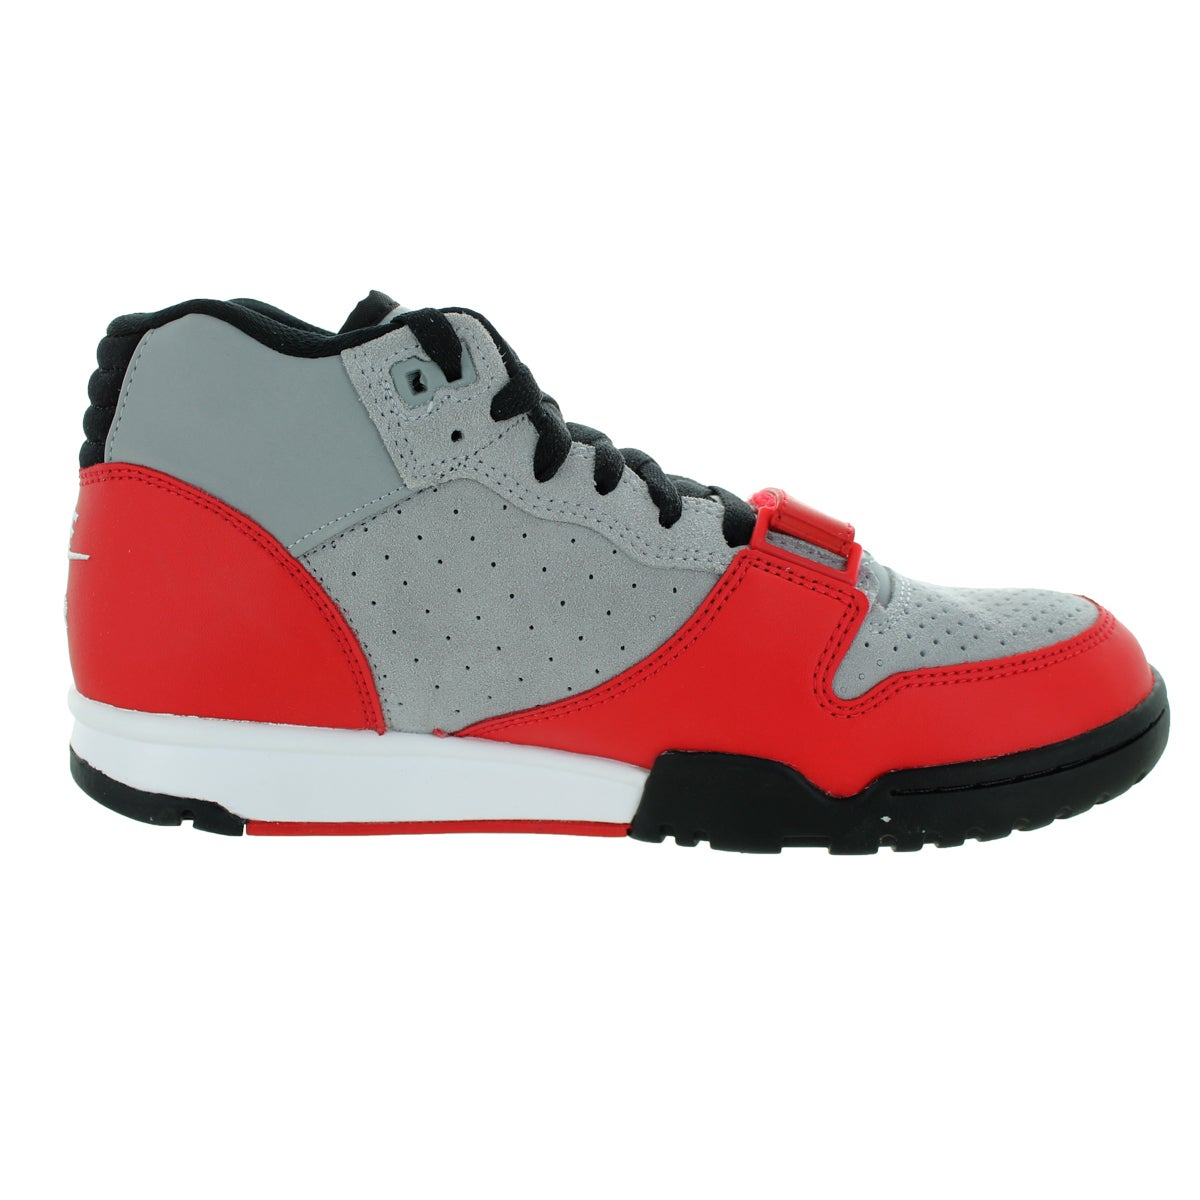 super cute f5a59 31517 Shop Nike Men s Air Trainer 1 Mid Wolf Grey White University Rd Black Training  Shoe - Free Shipping Today - Overstock - 12328731